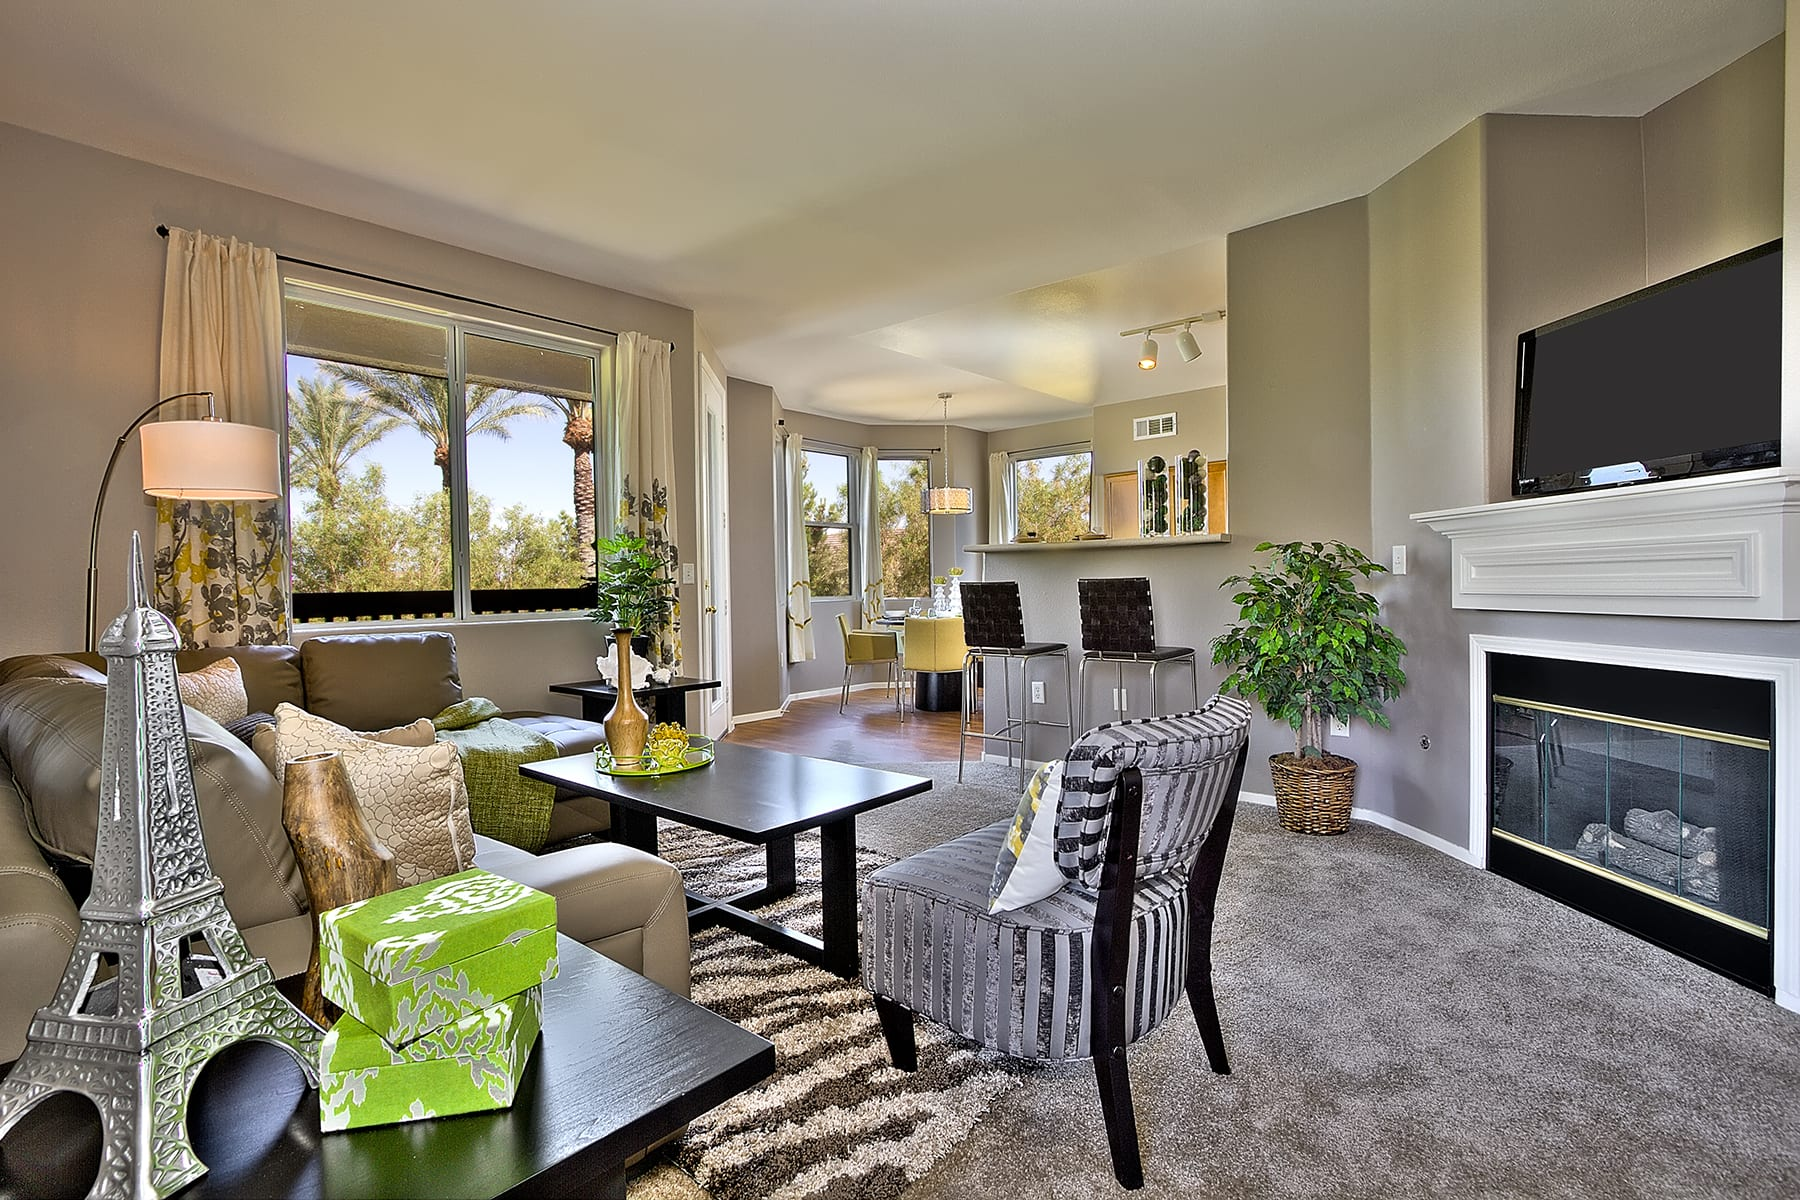 A warm fireplace and plush carpet create a comfortable and inviting space in this furnished living room.